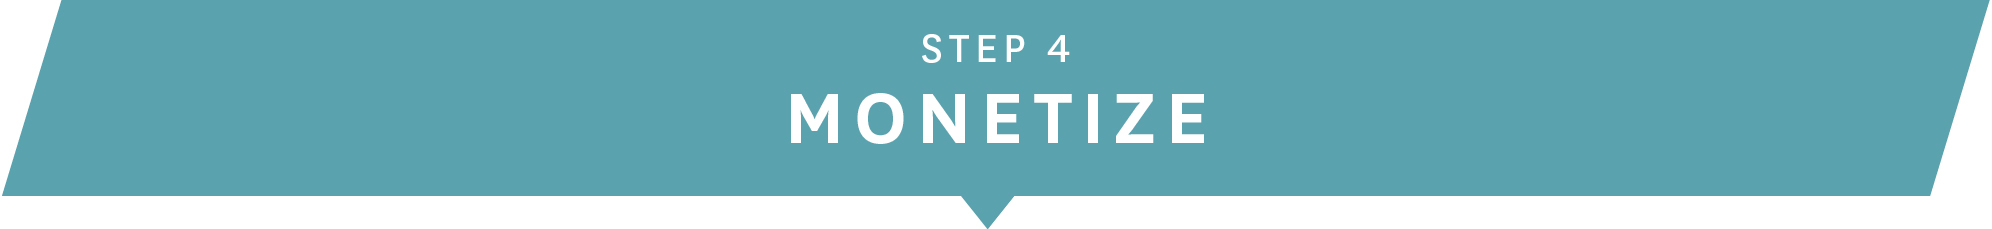 step-4-monetize